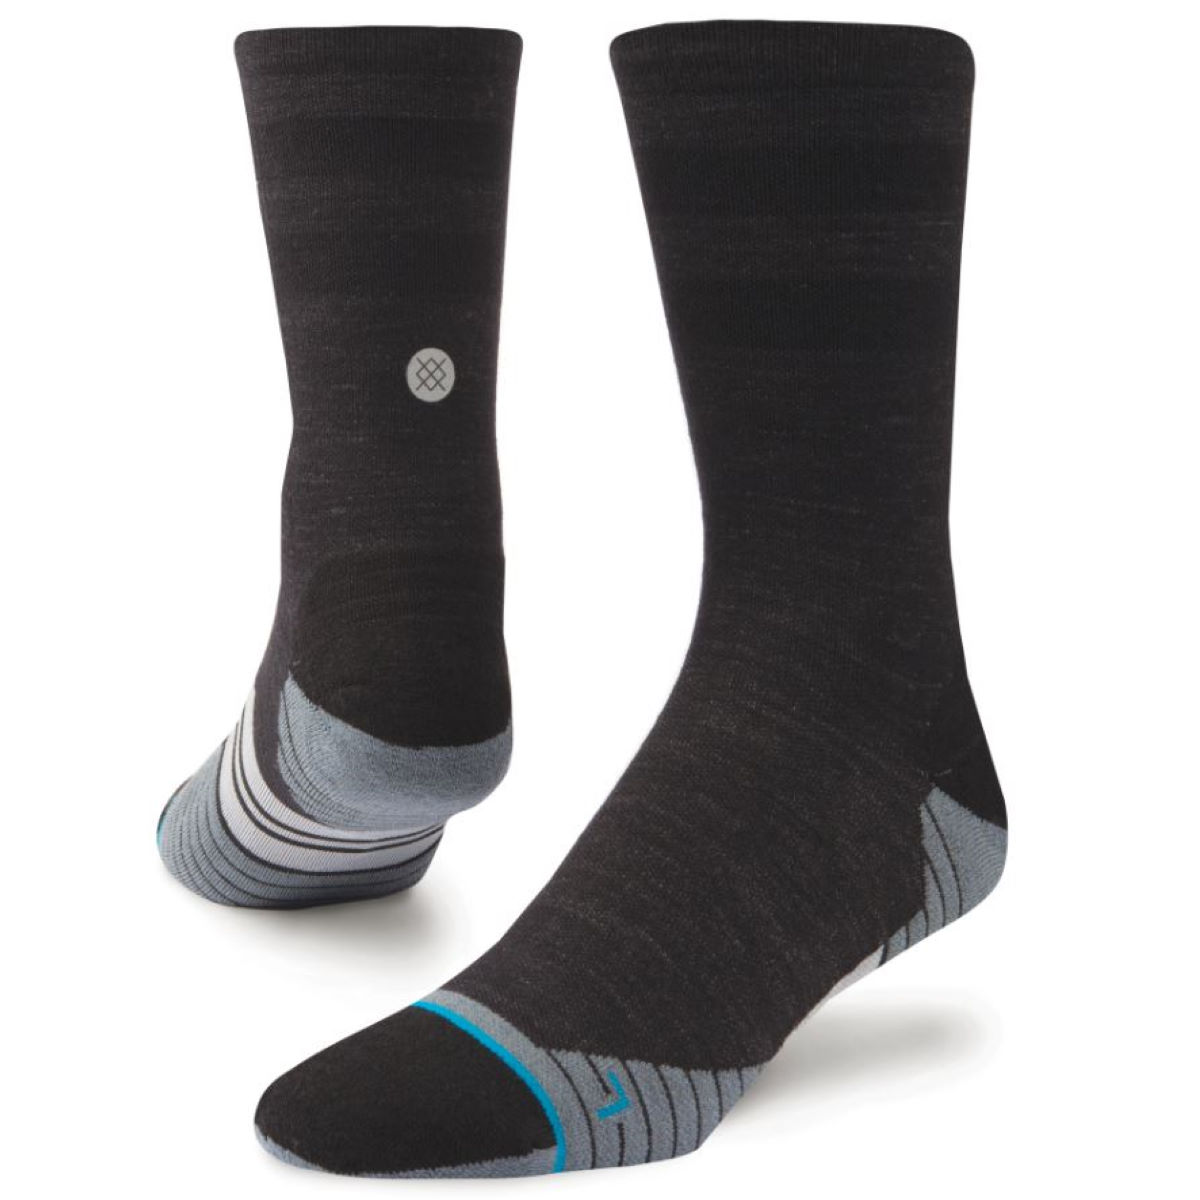 Calcetines Stance Uncommon Solids Run - Calcetines